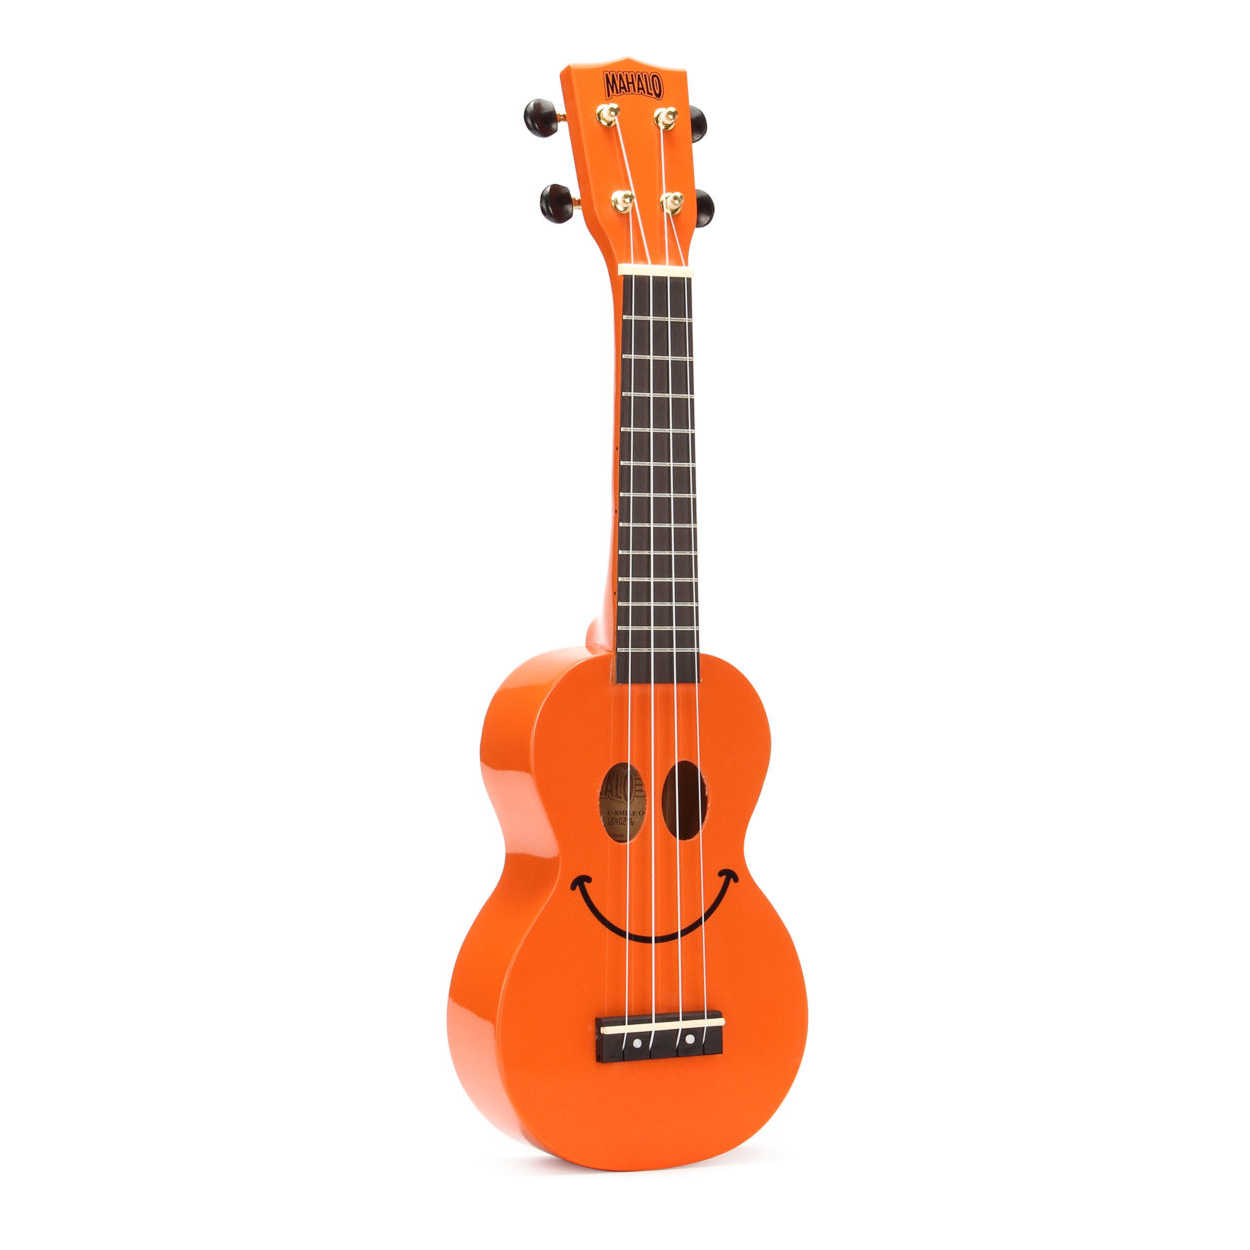 Mahalo U-Smile Series – Soprano Ukulele - Orange